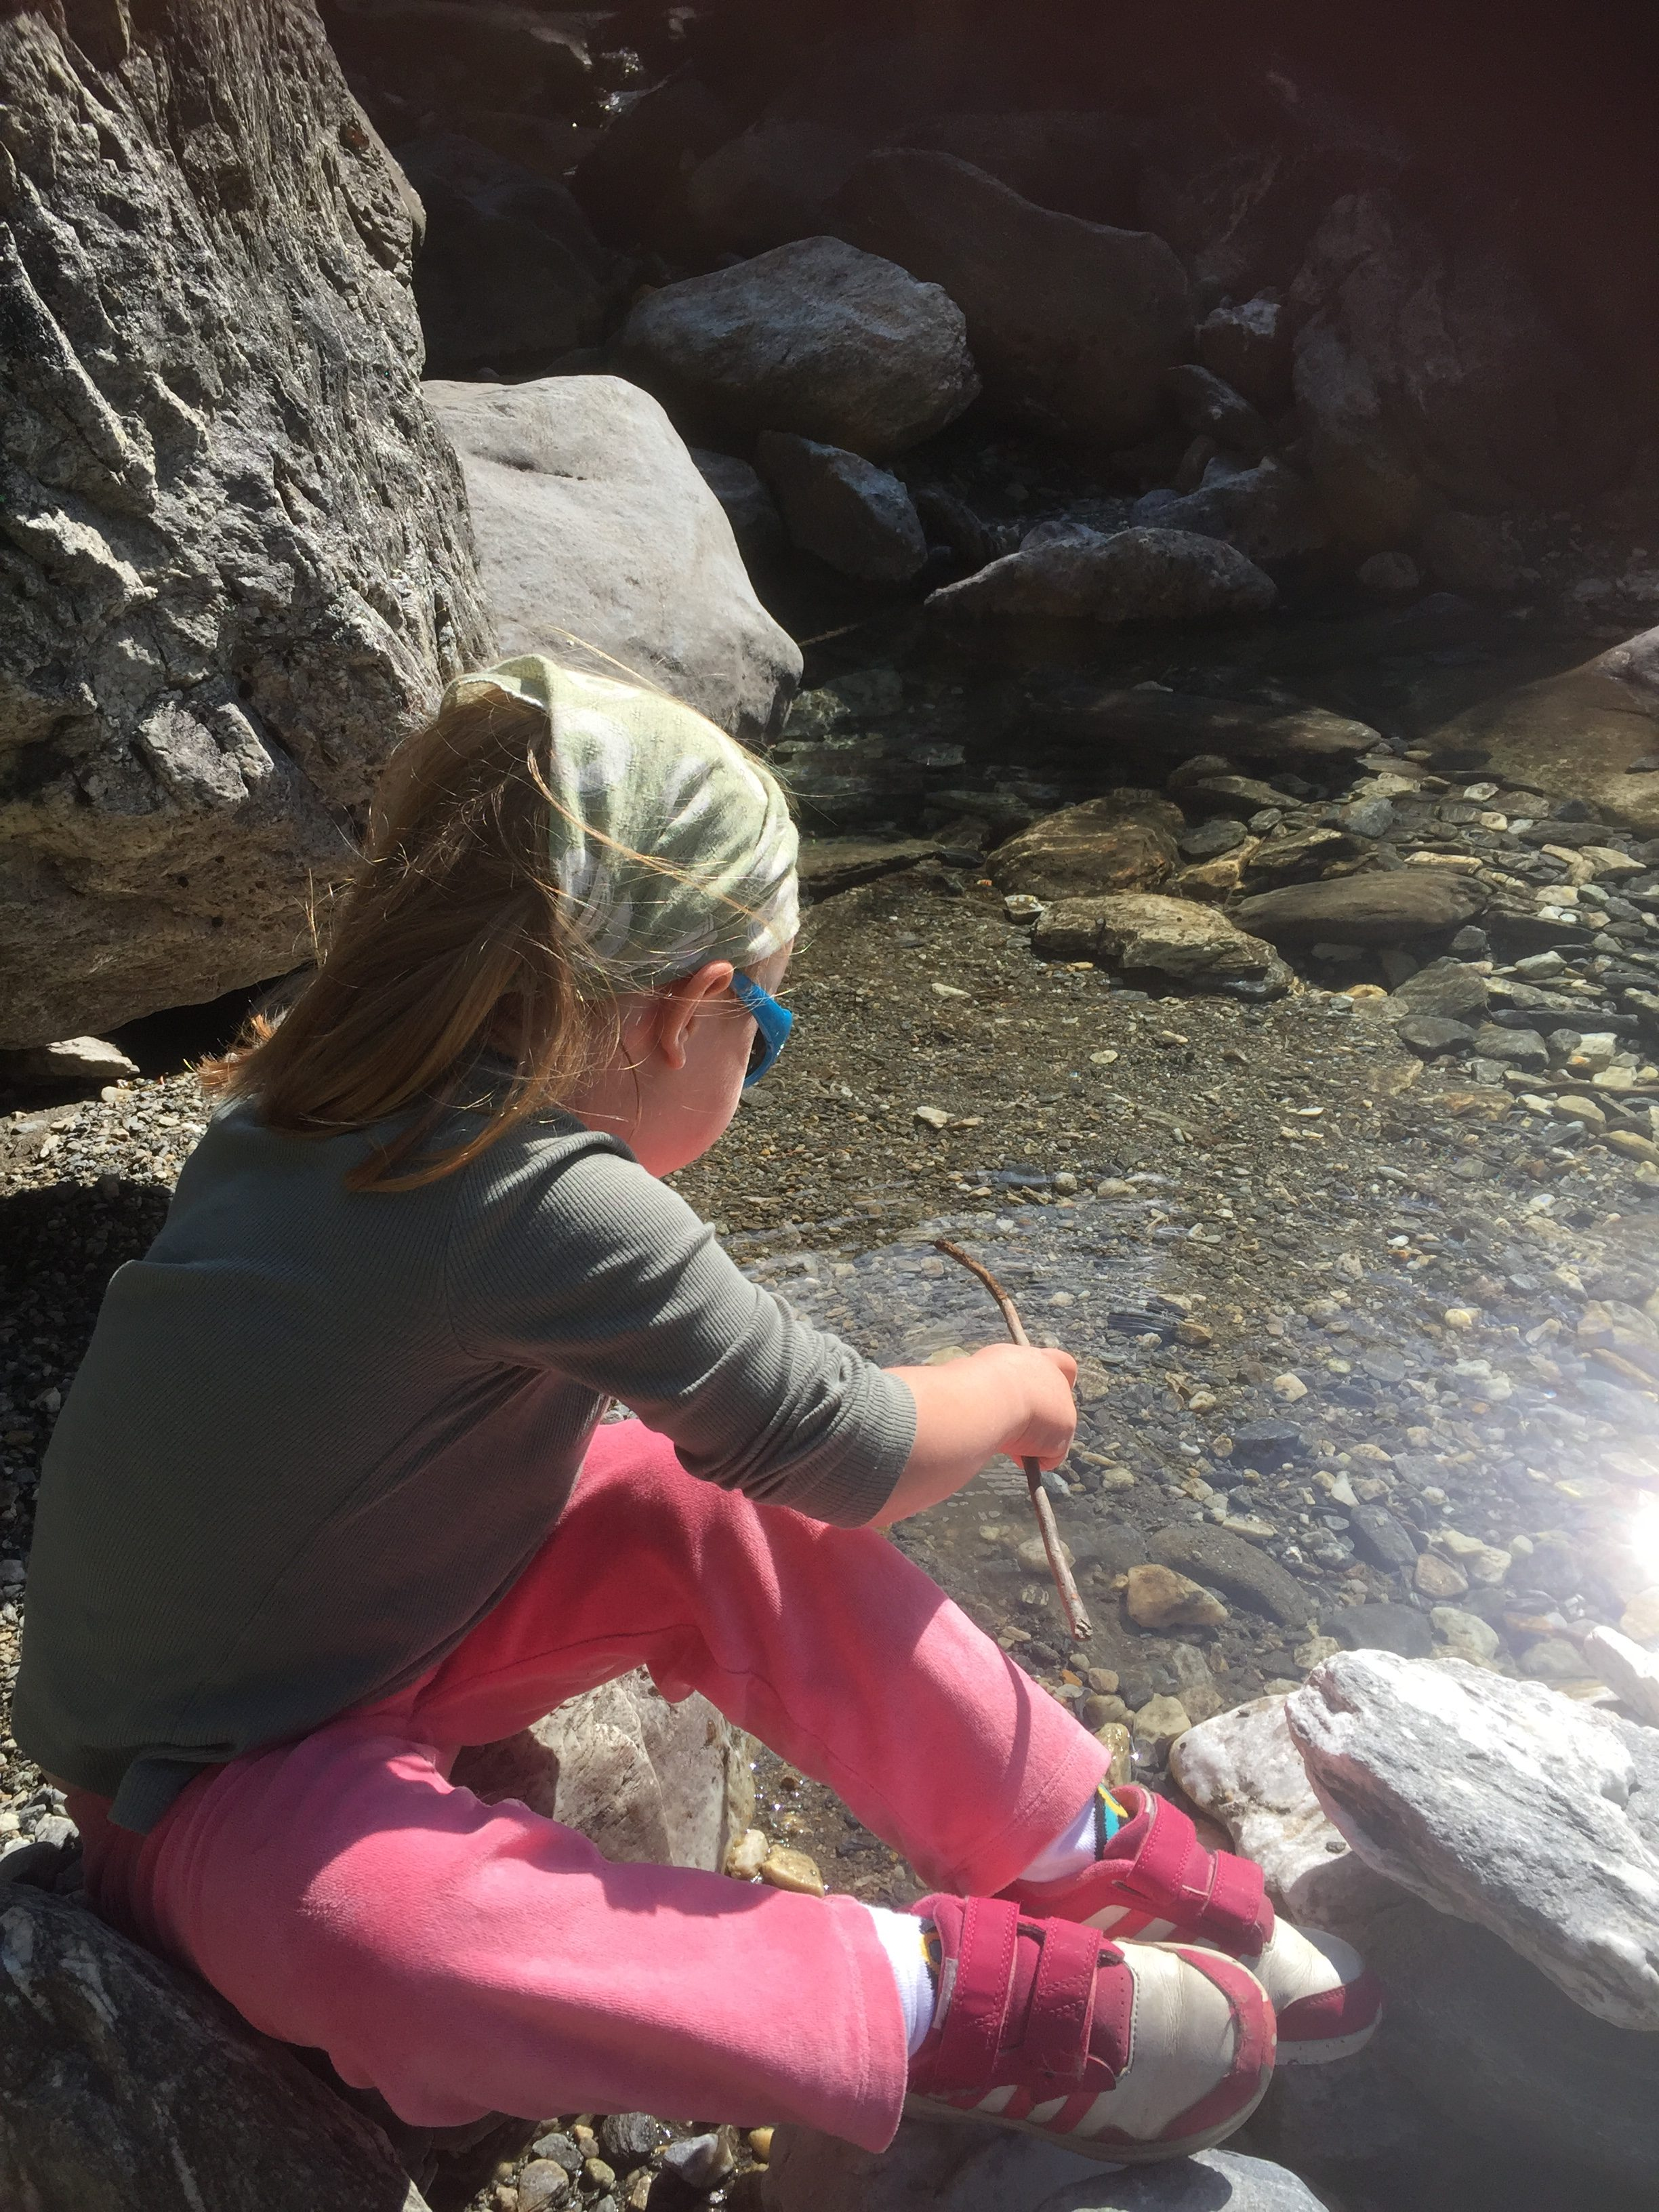 Activities to do with children on a hike